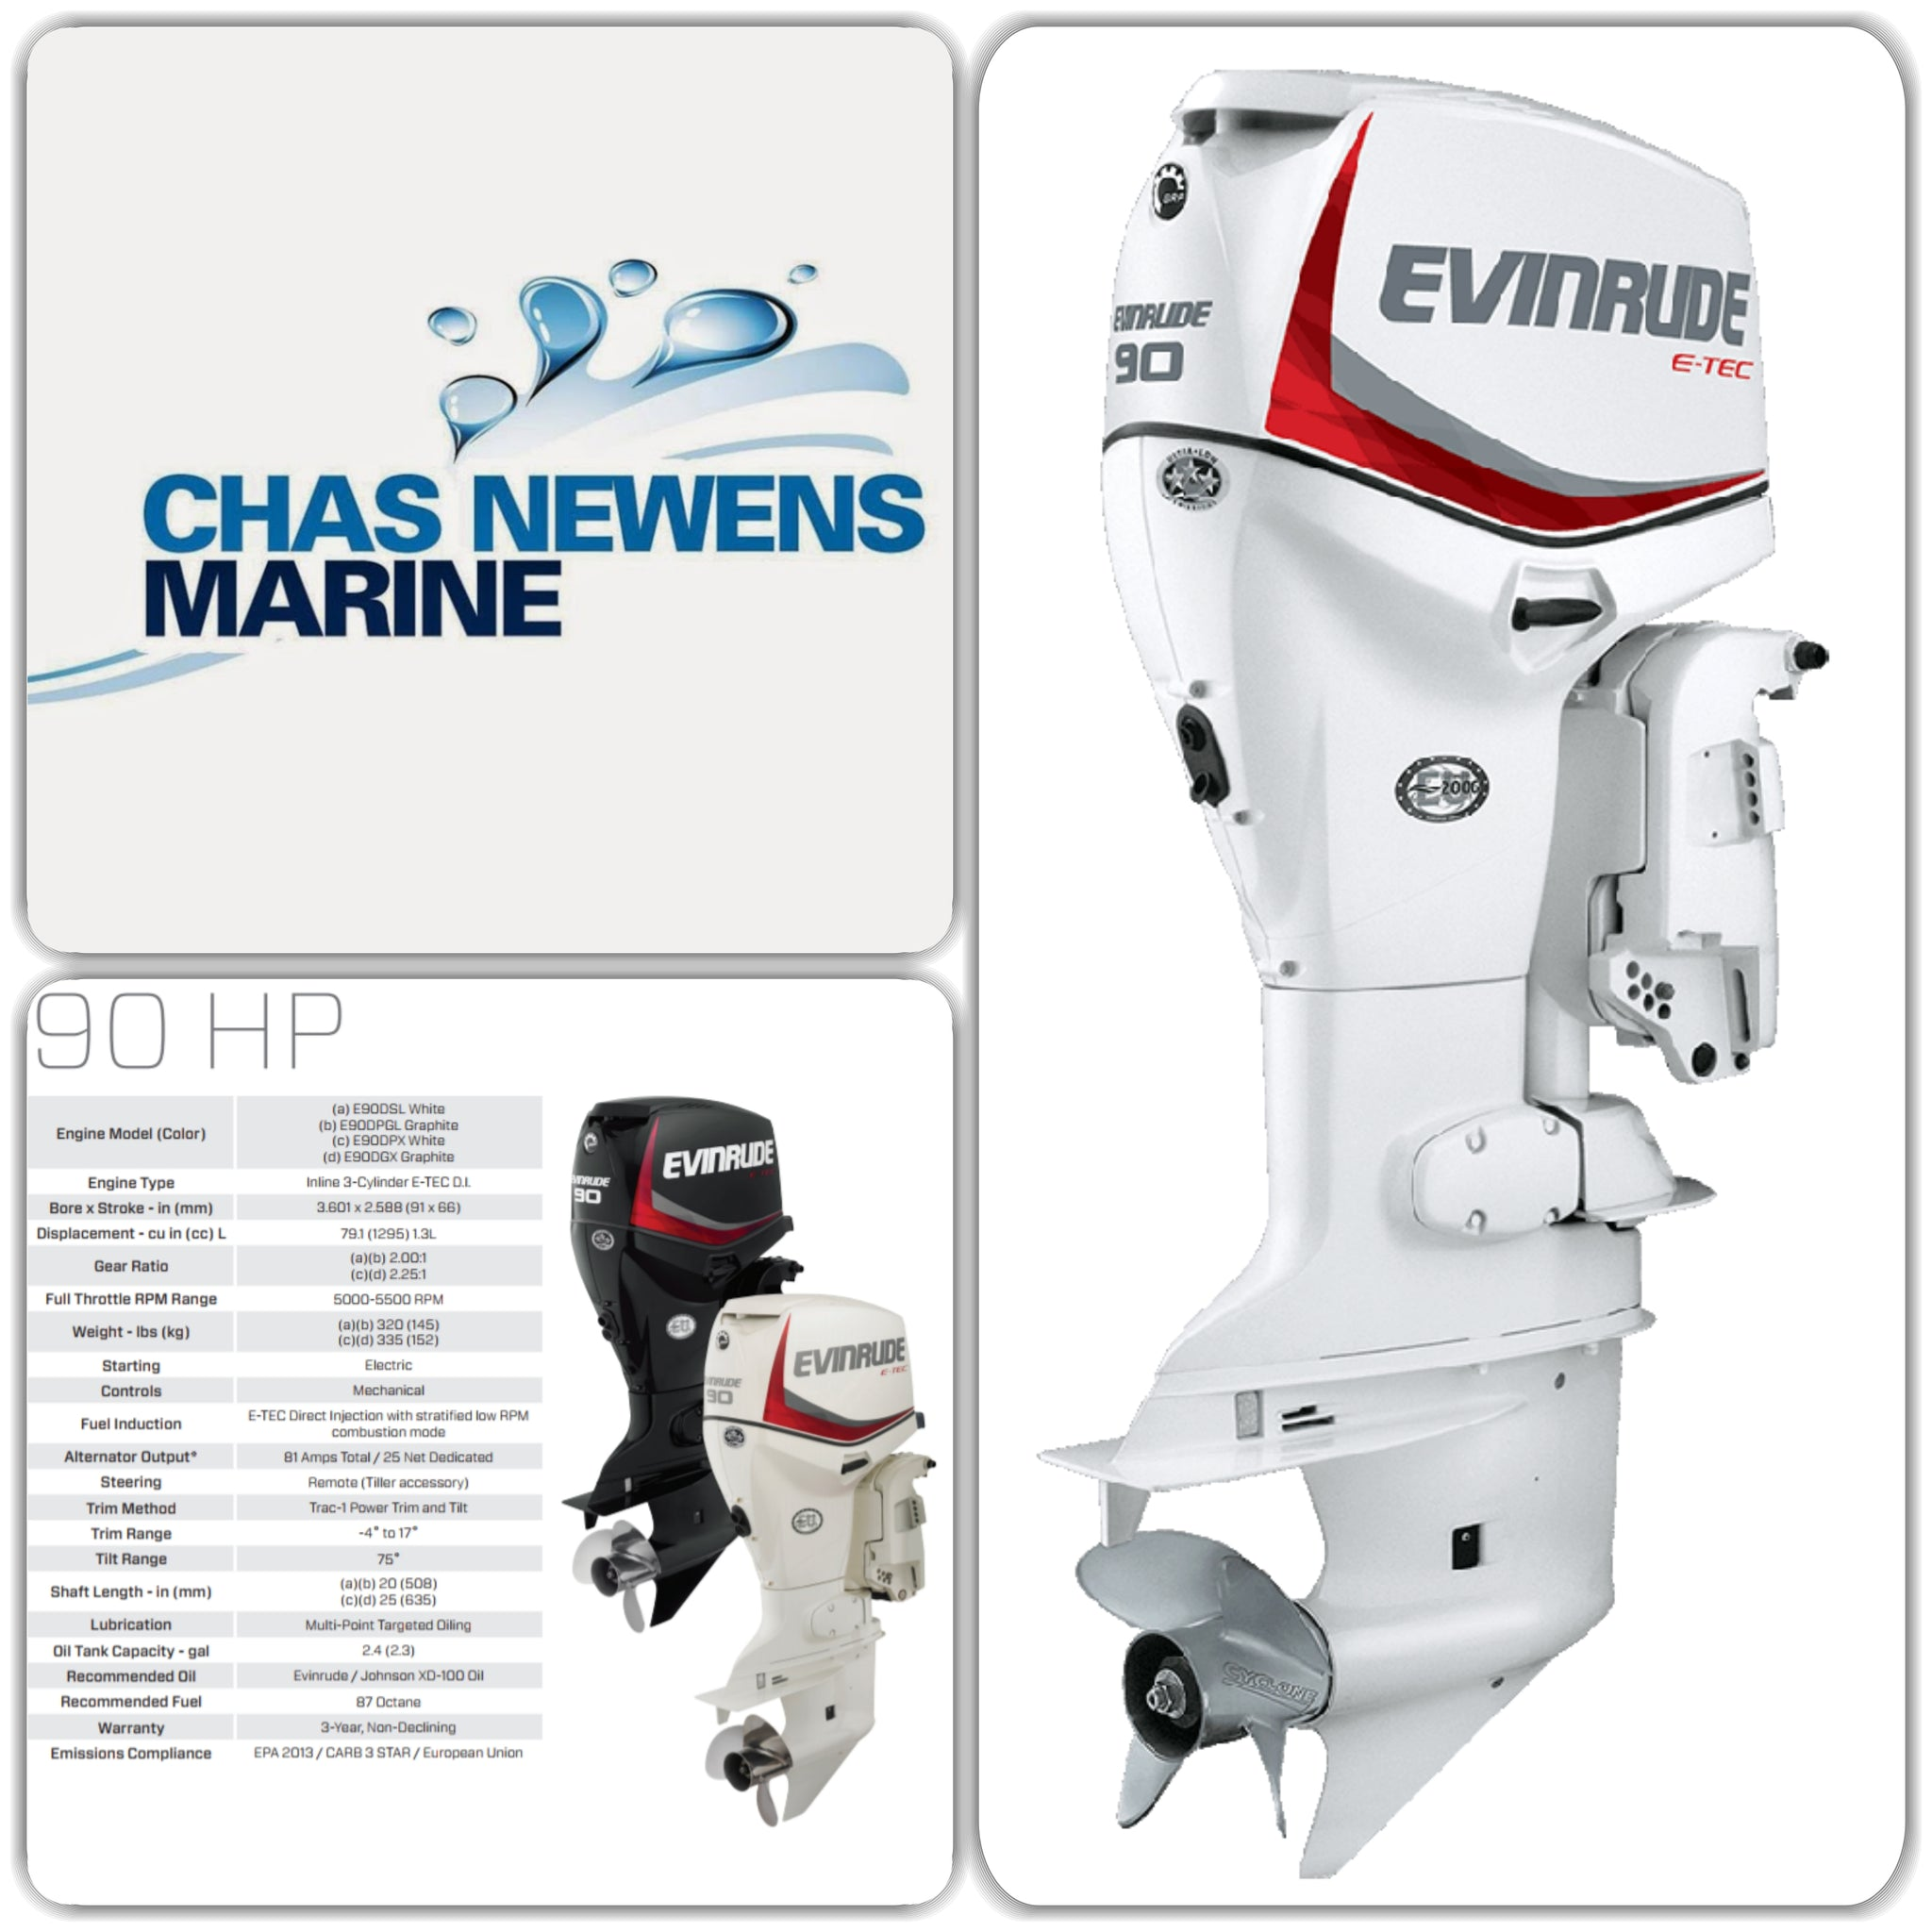 johnson 90 hp wiring diagram evinrude etec 90 wiring diagram wiring diagrams  evinrude etec 90 wiring diagram